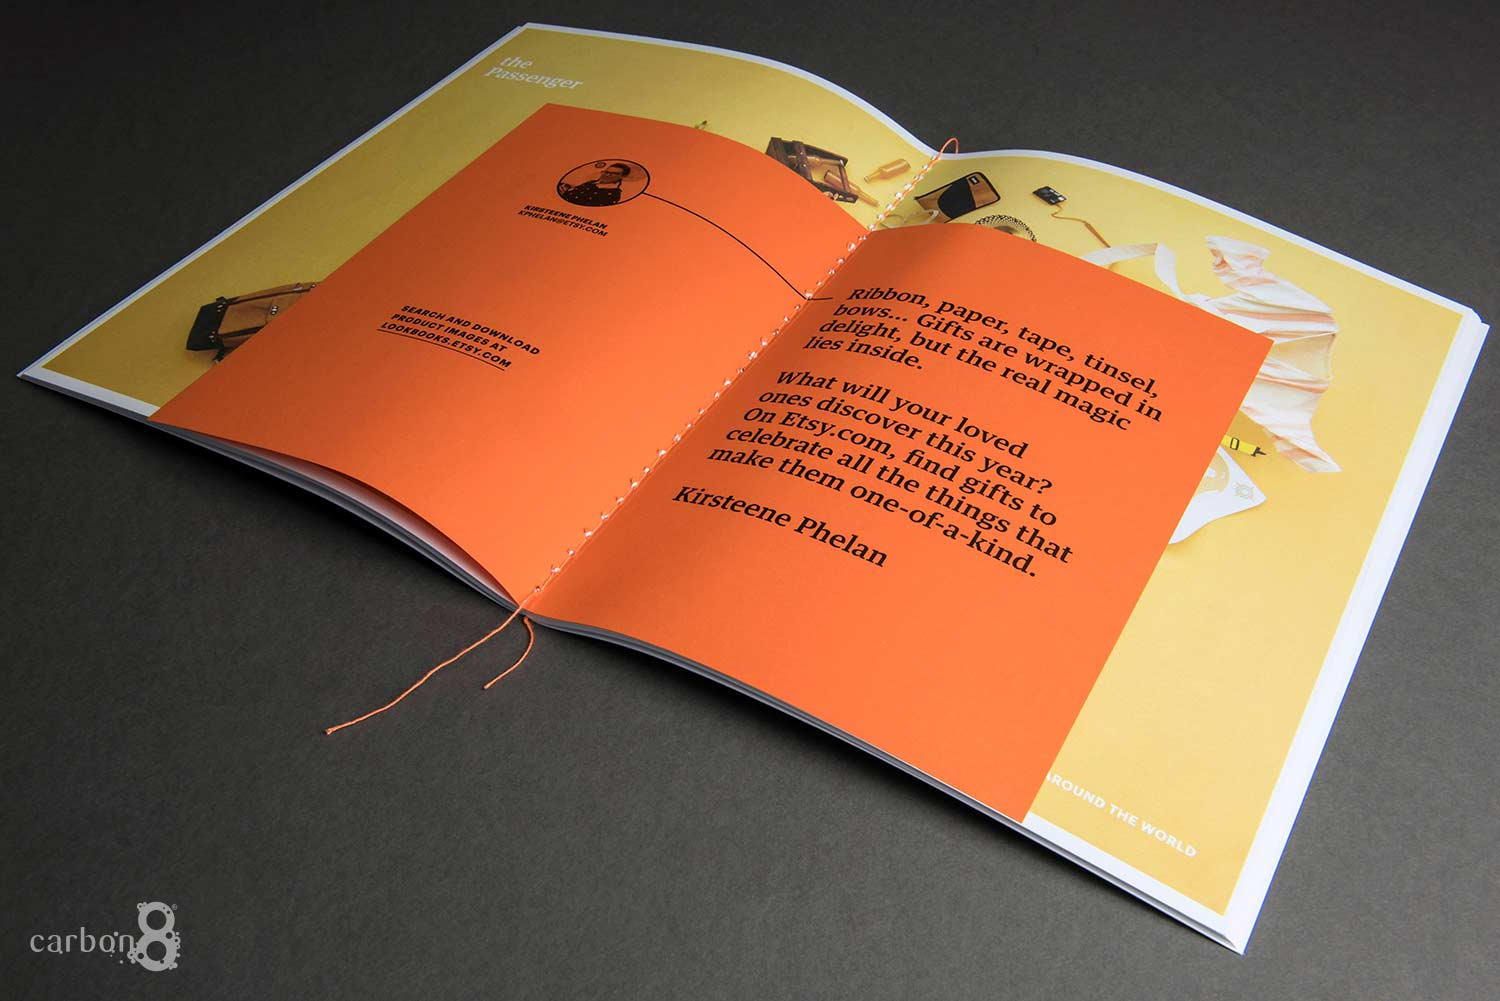 Etsy booklet digitally printed - cover